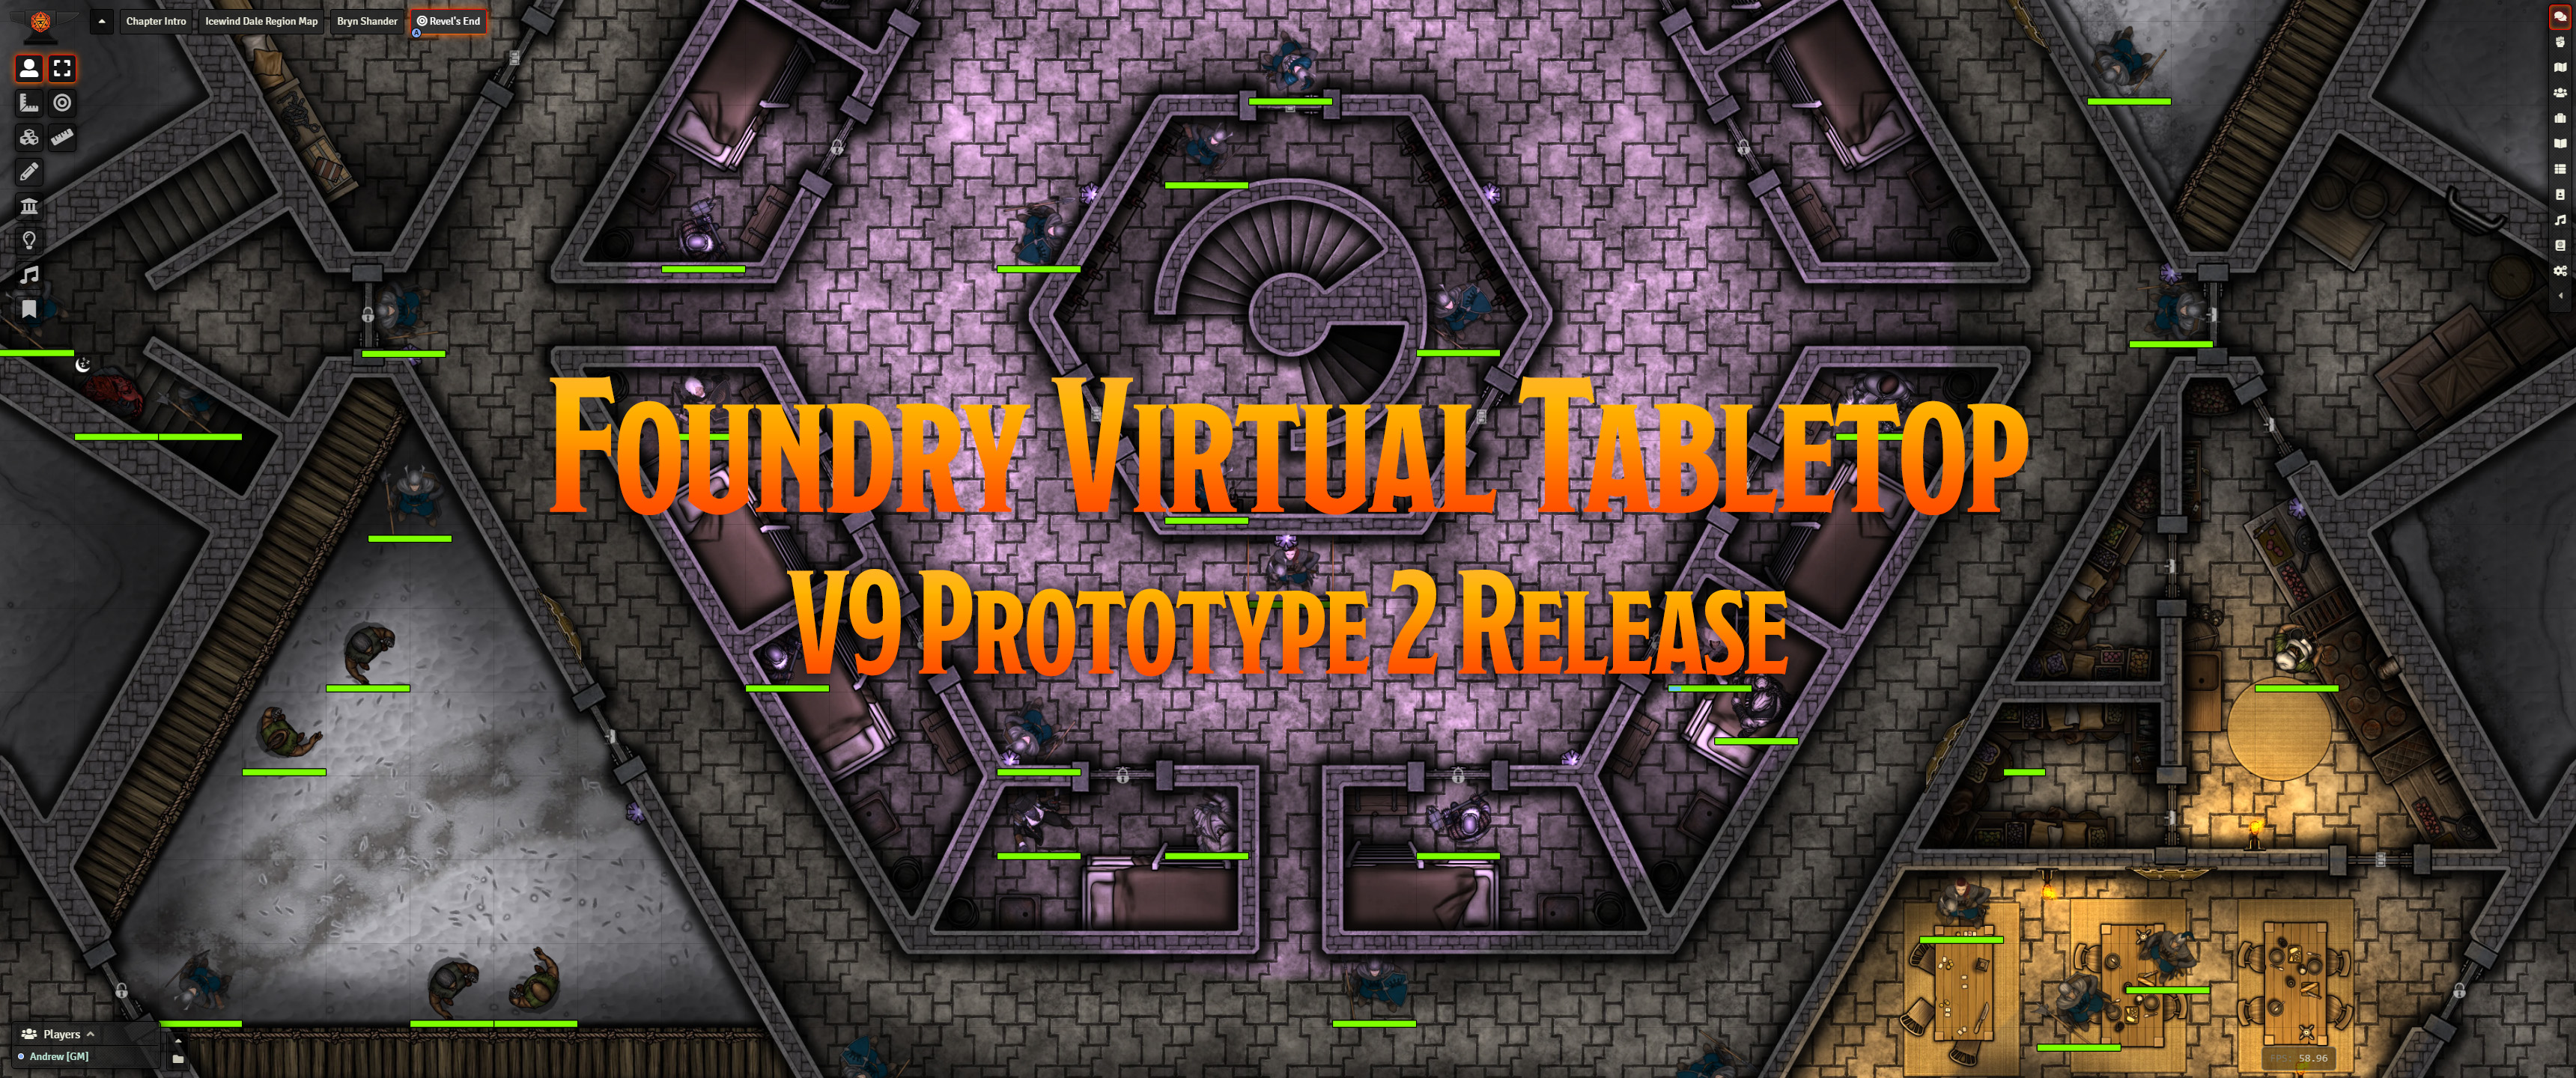 Release Notes for Foundry Virtual Tabletop Version 9 Prototype 2 Release